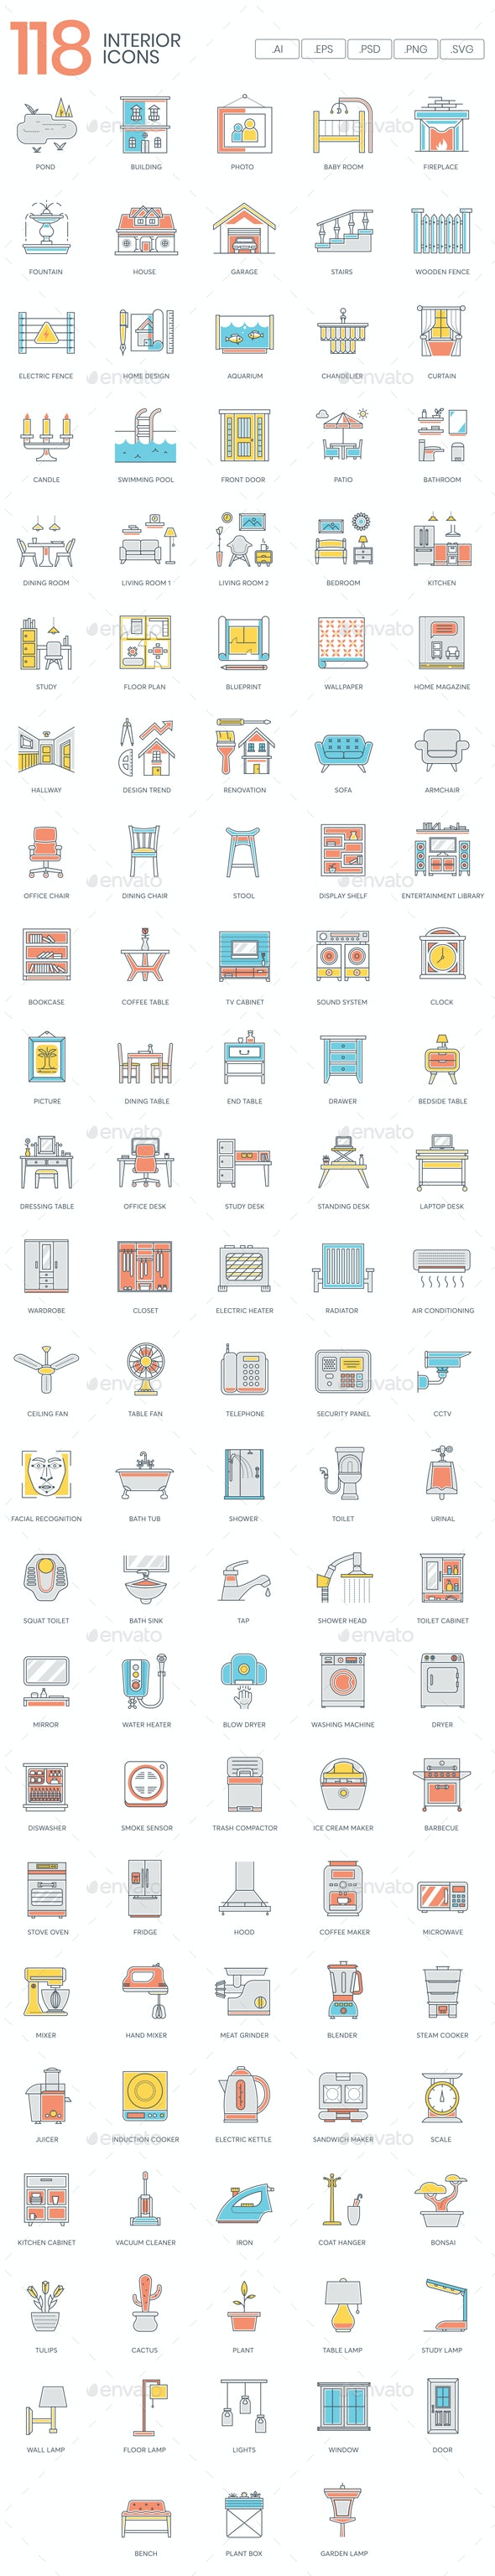 Interior Design Icons - Man-made objects Objects